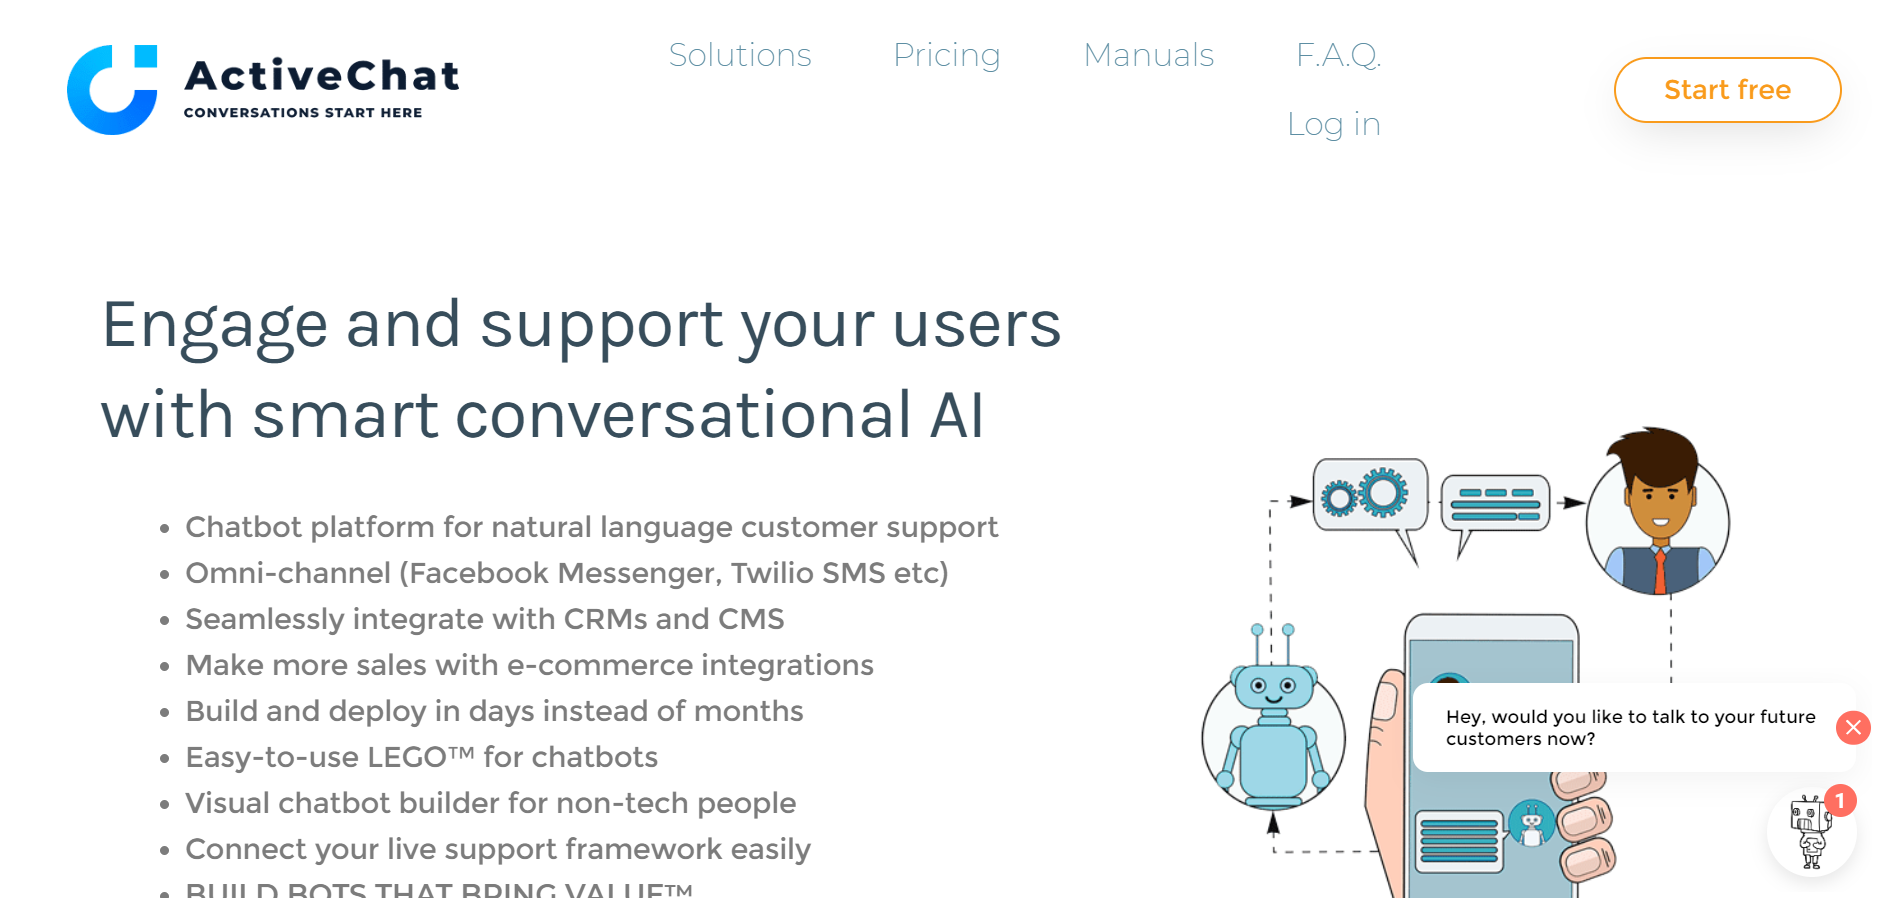 best ecommerce chatbot tools - ActiveChat